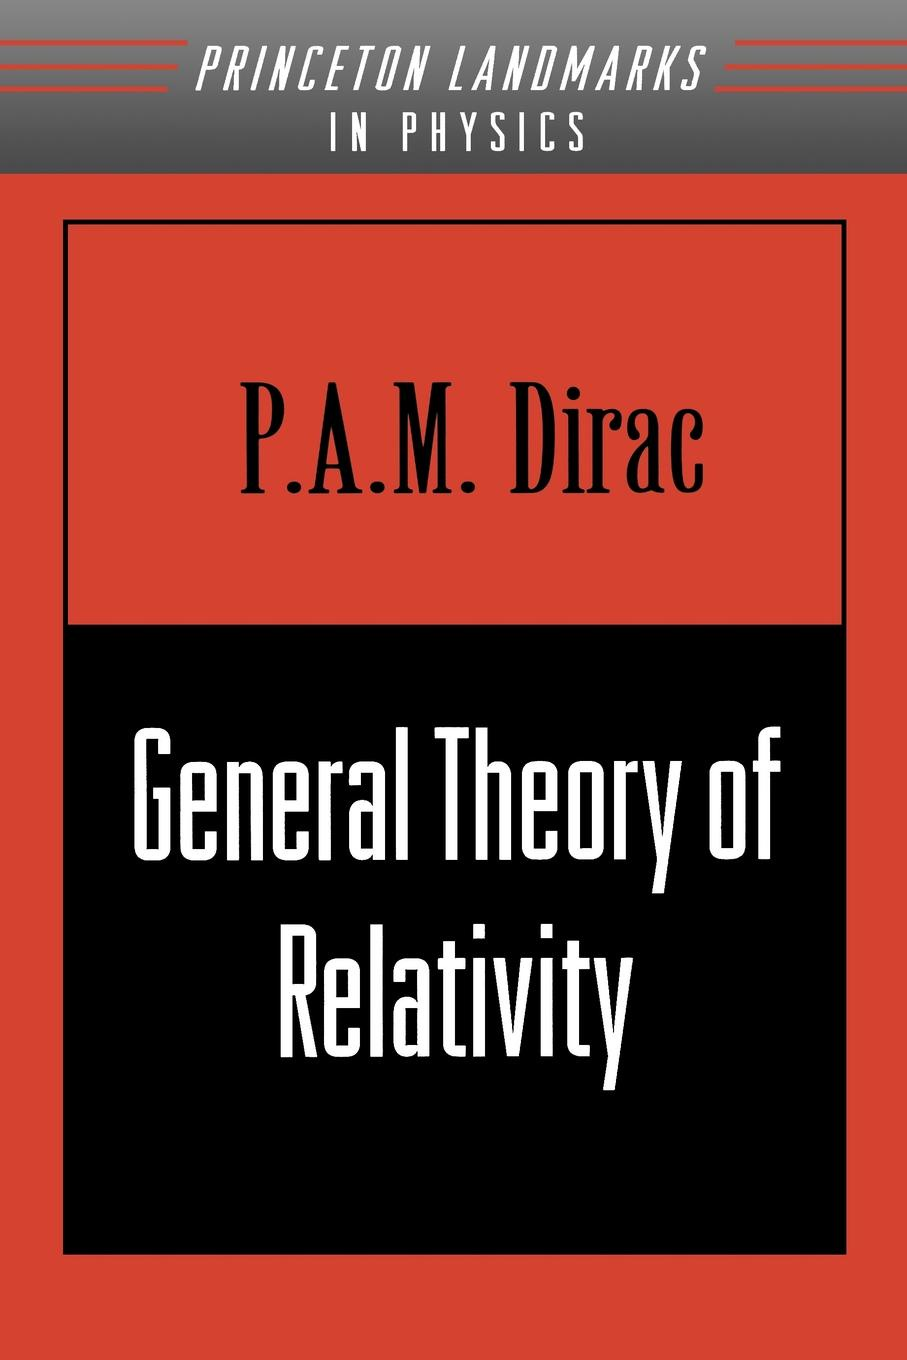 P. A.M. Dirac General Theory of Relativity 100 years of relativity space time structure einstein and beyond